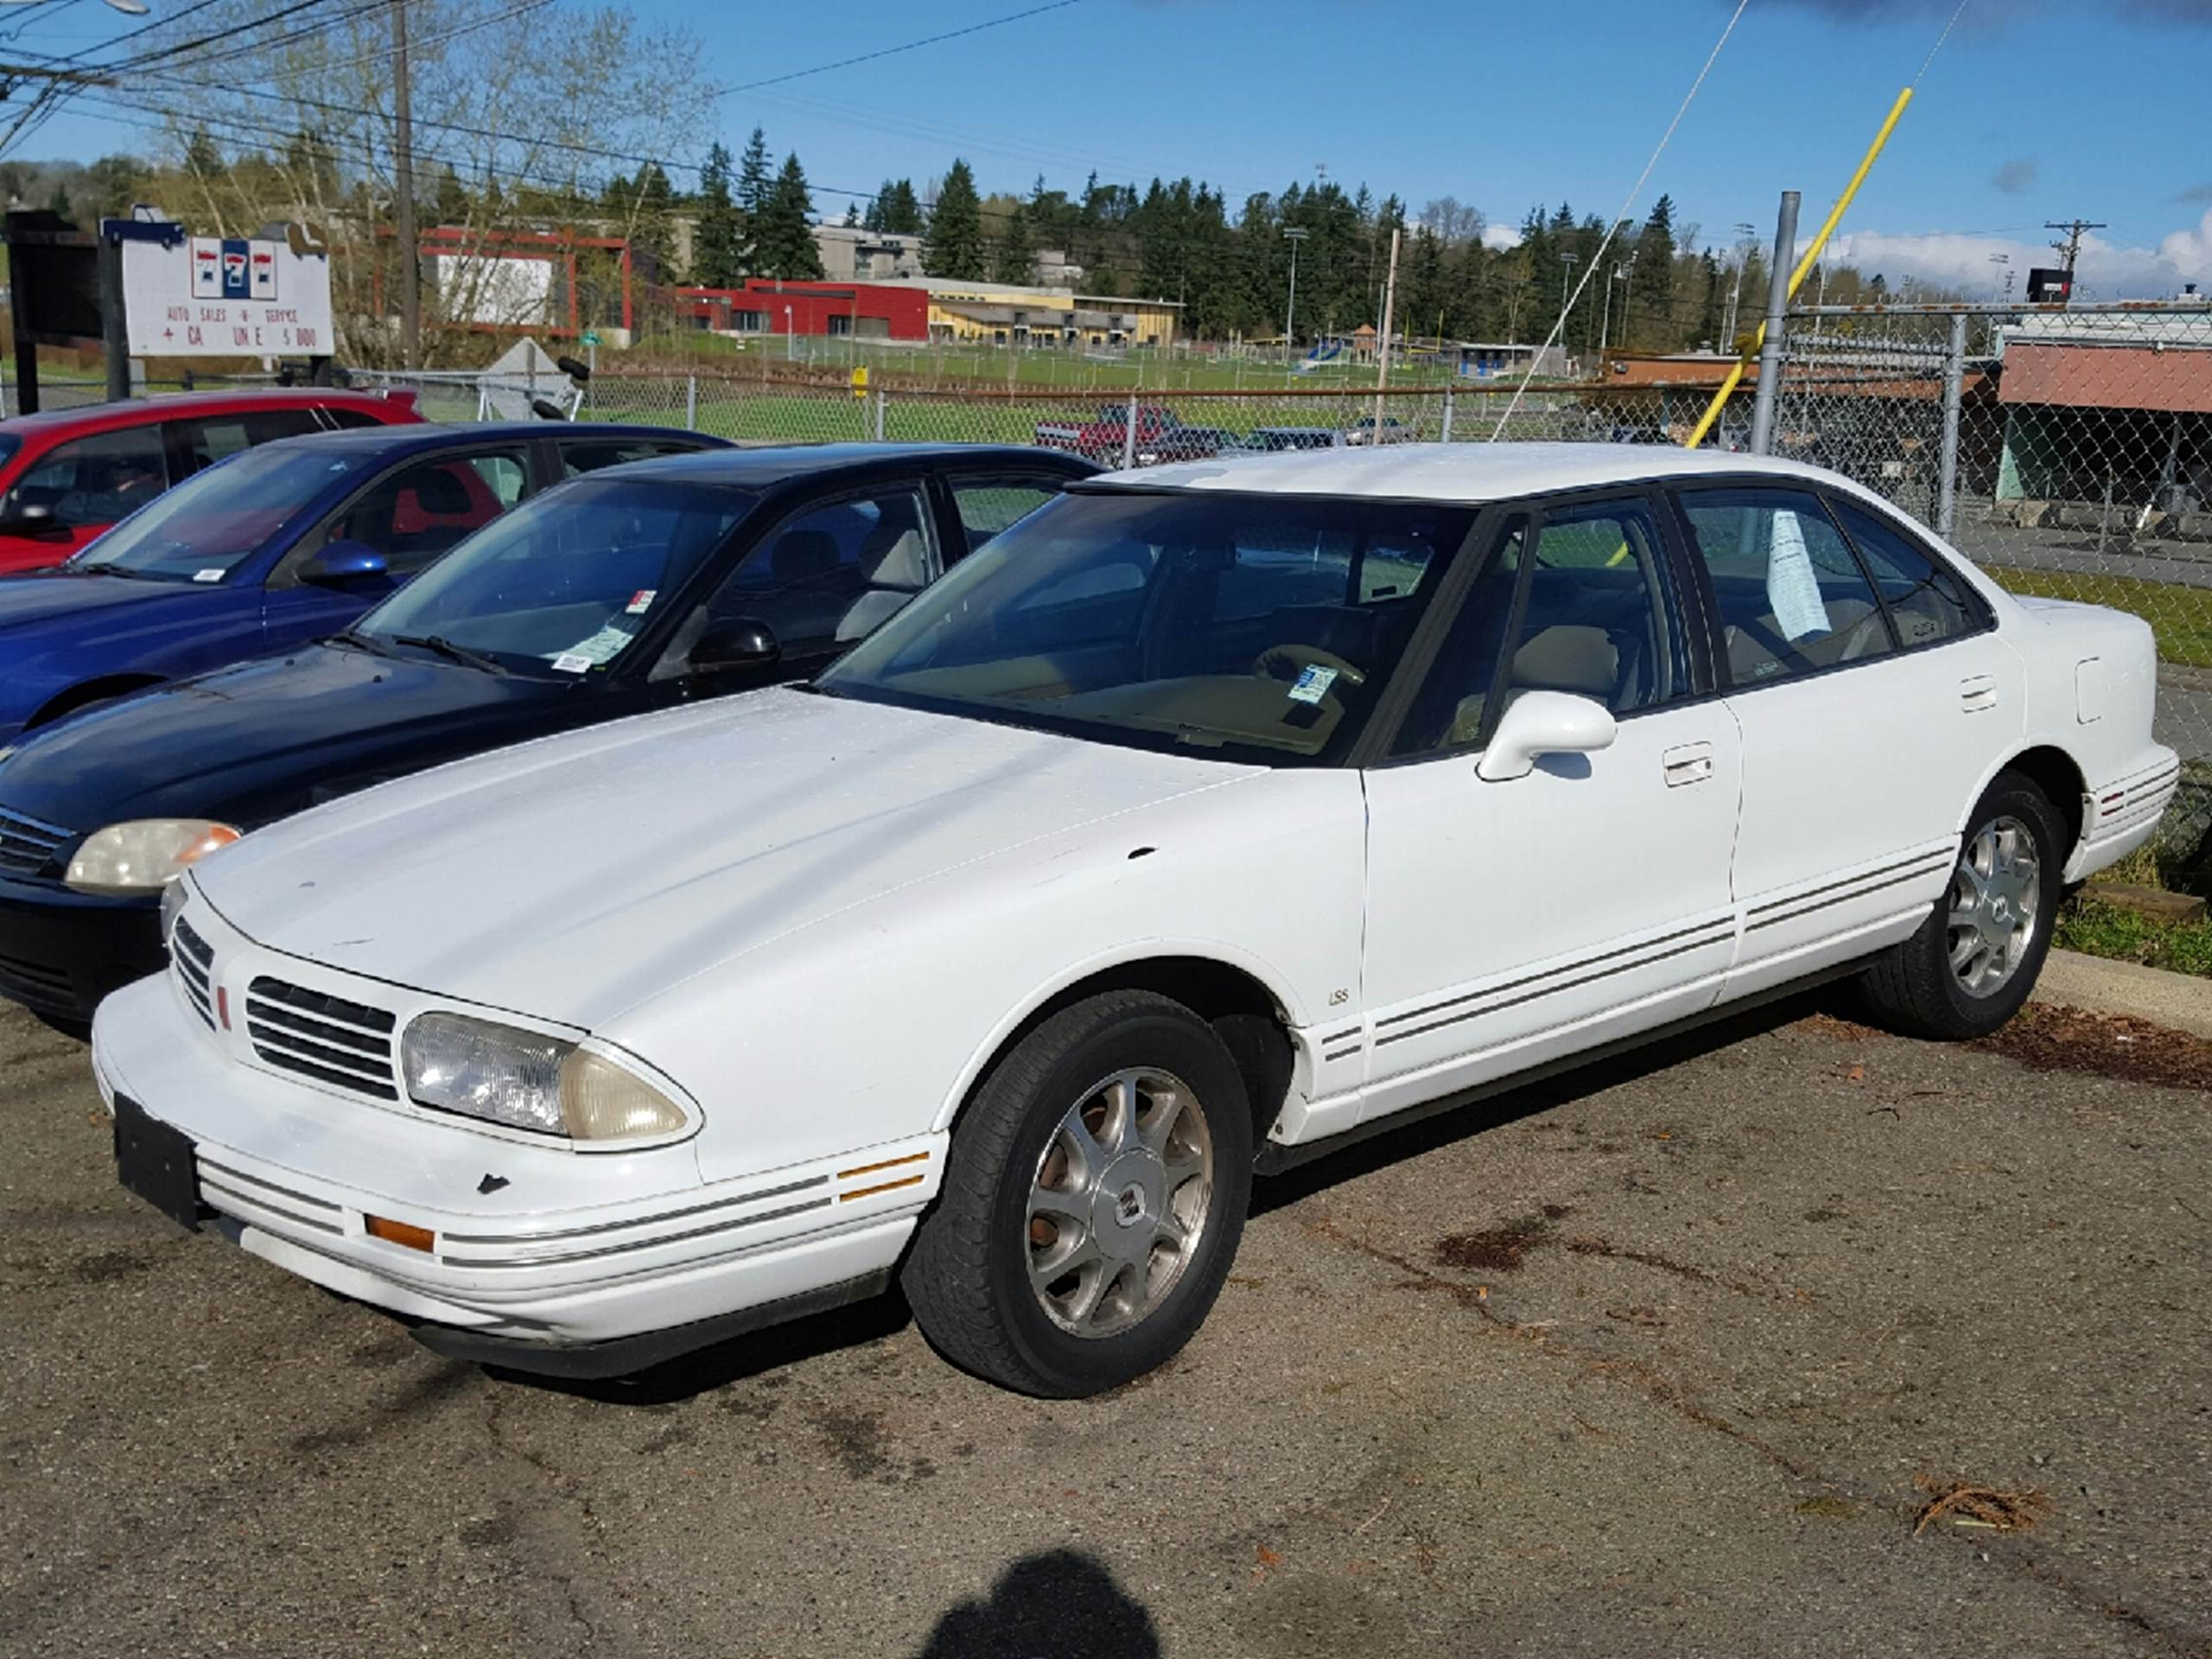 1995 Oldsmobile Eighty-Eight Royale for sale in Tacoma, WA